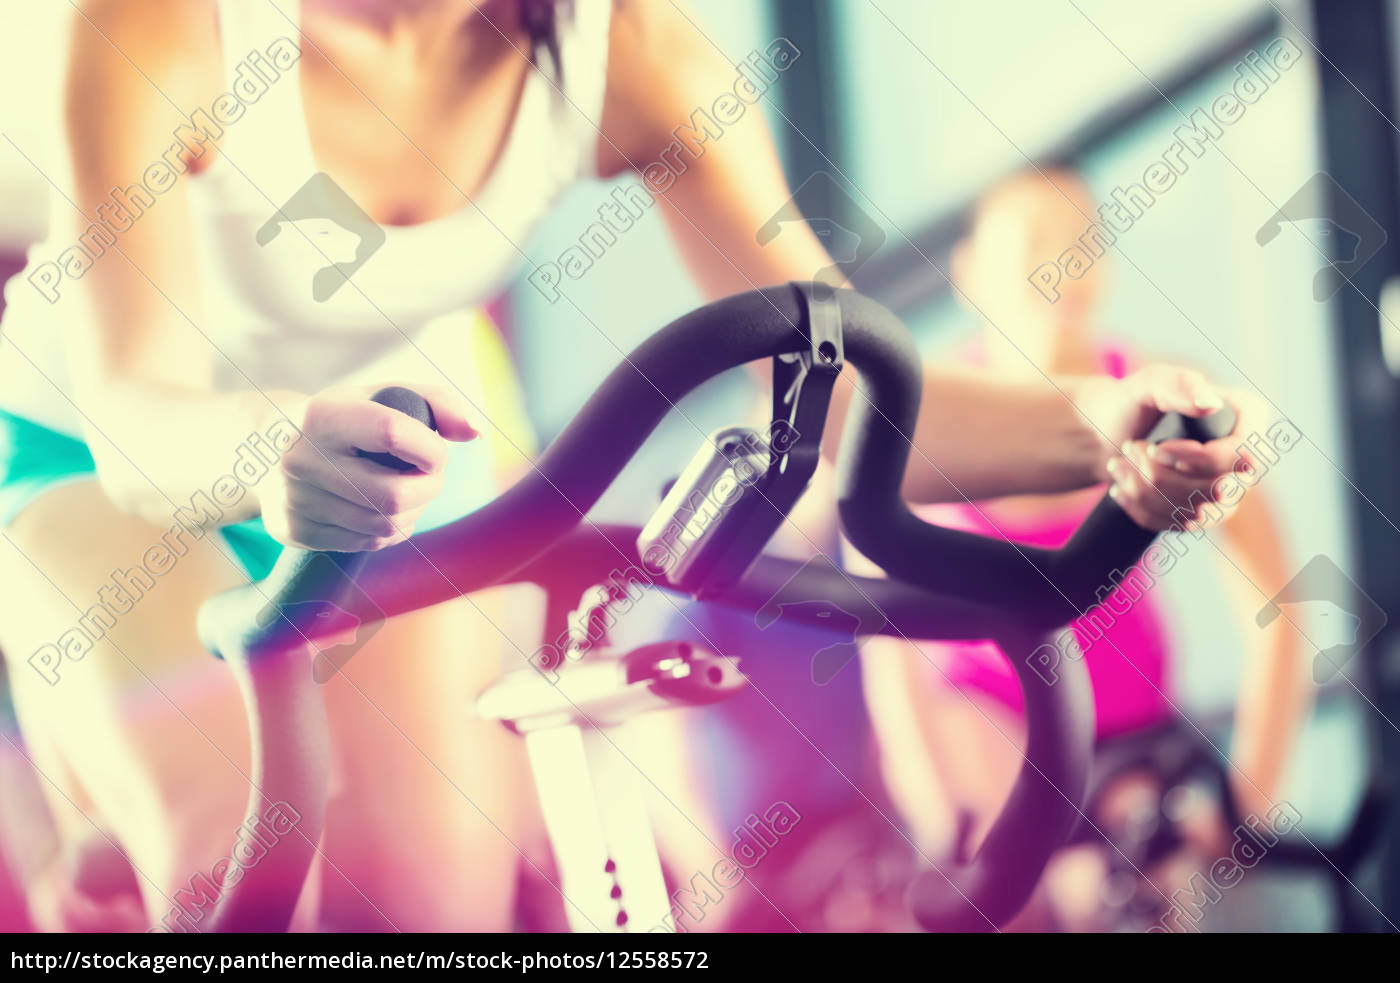 people, at, spinning, at, a, gym - 12558572